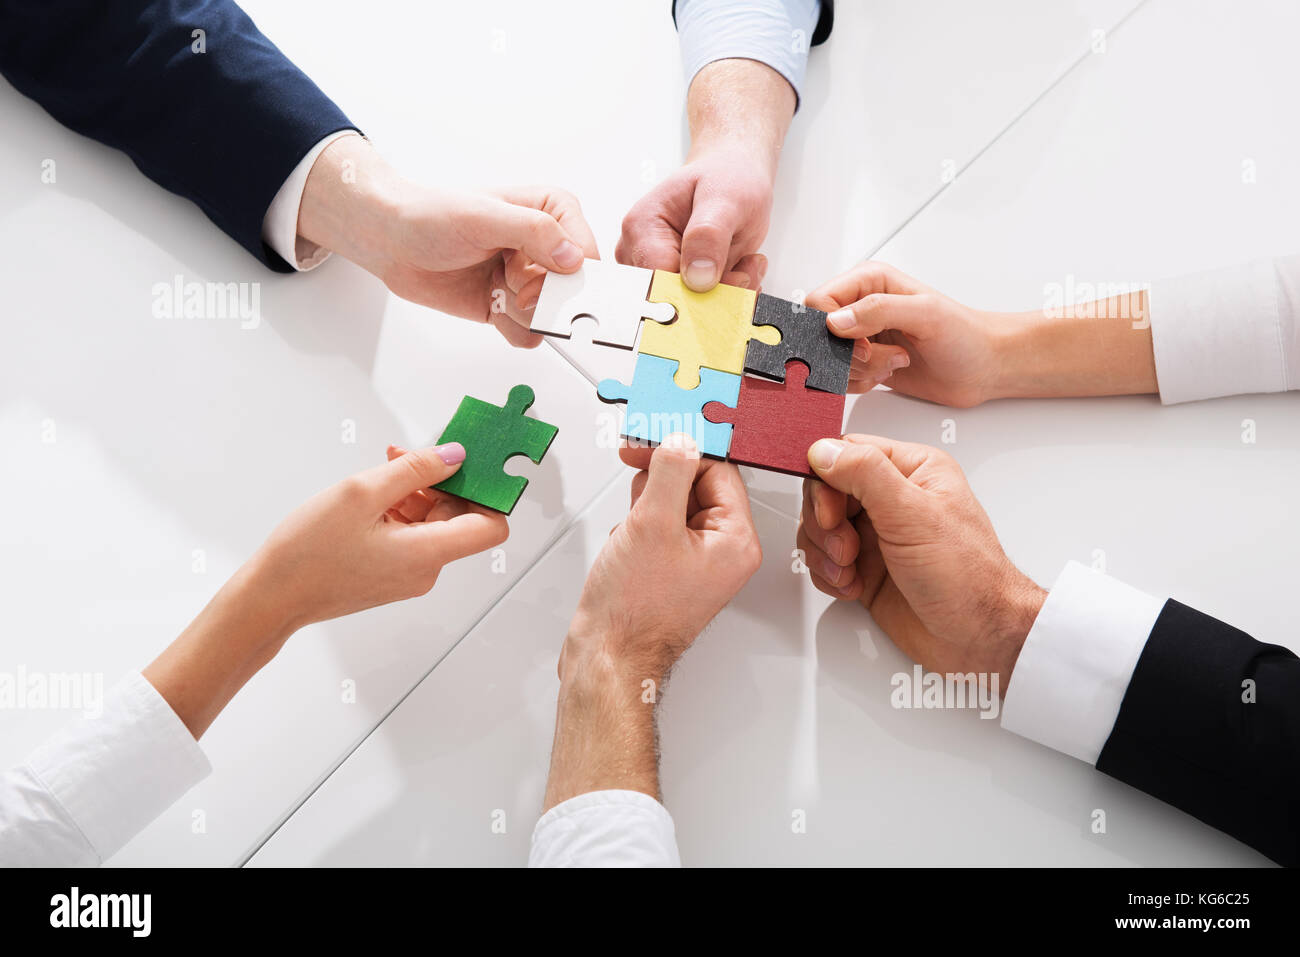 Teamwork of partners. Concept of integration and startup with puzzle pieces - Stock Image